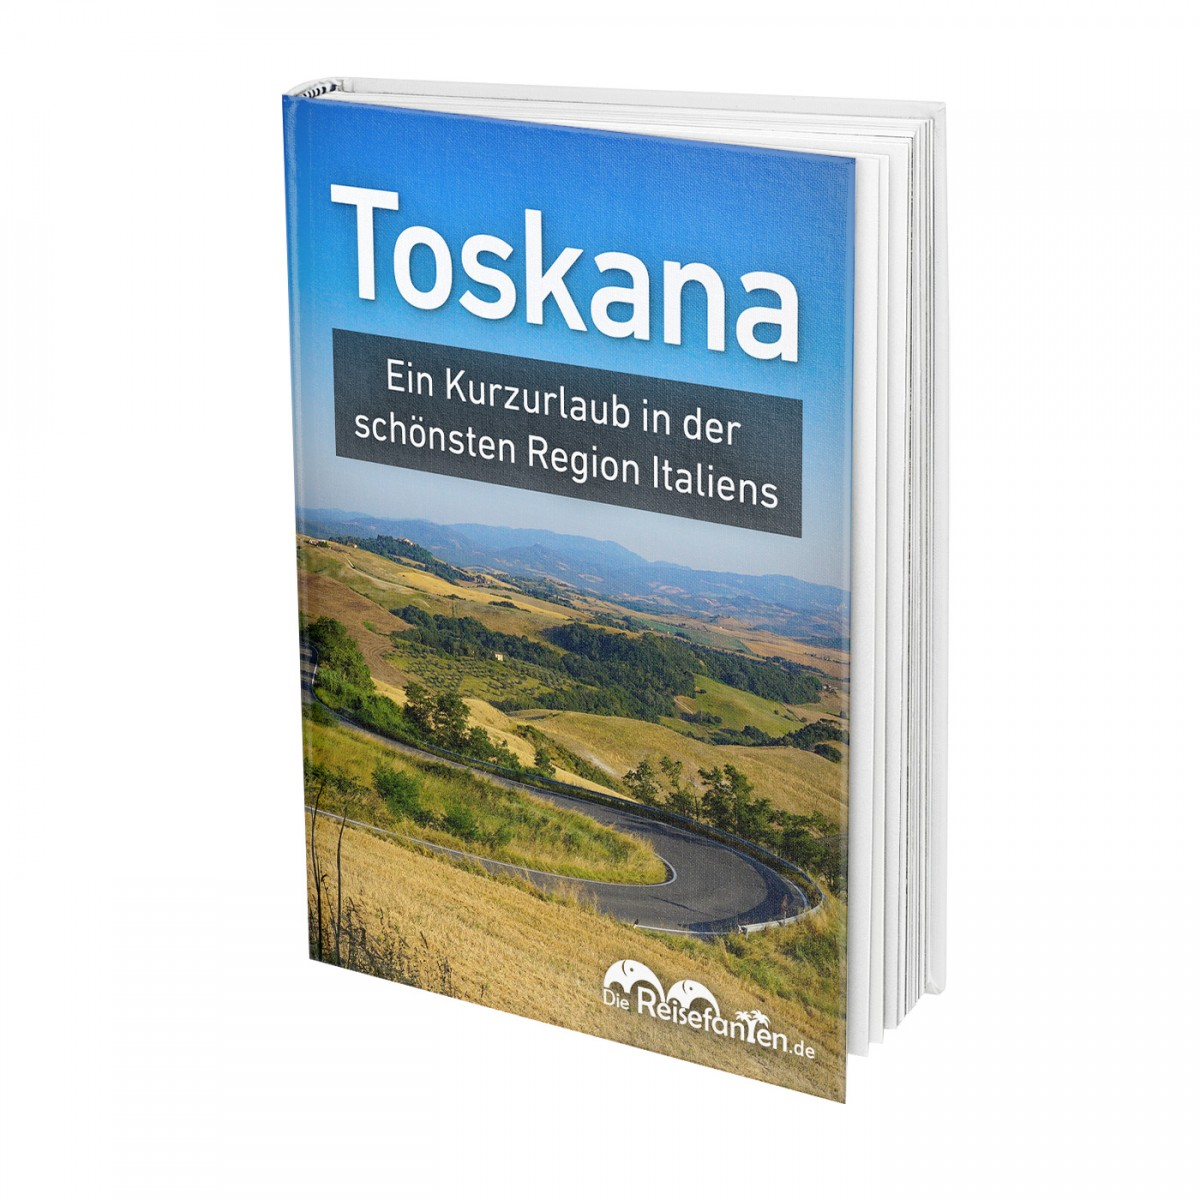 Reisefanten_eBook_Band10_Toskana_Cover_v10_Mockup_1400px